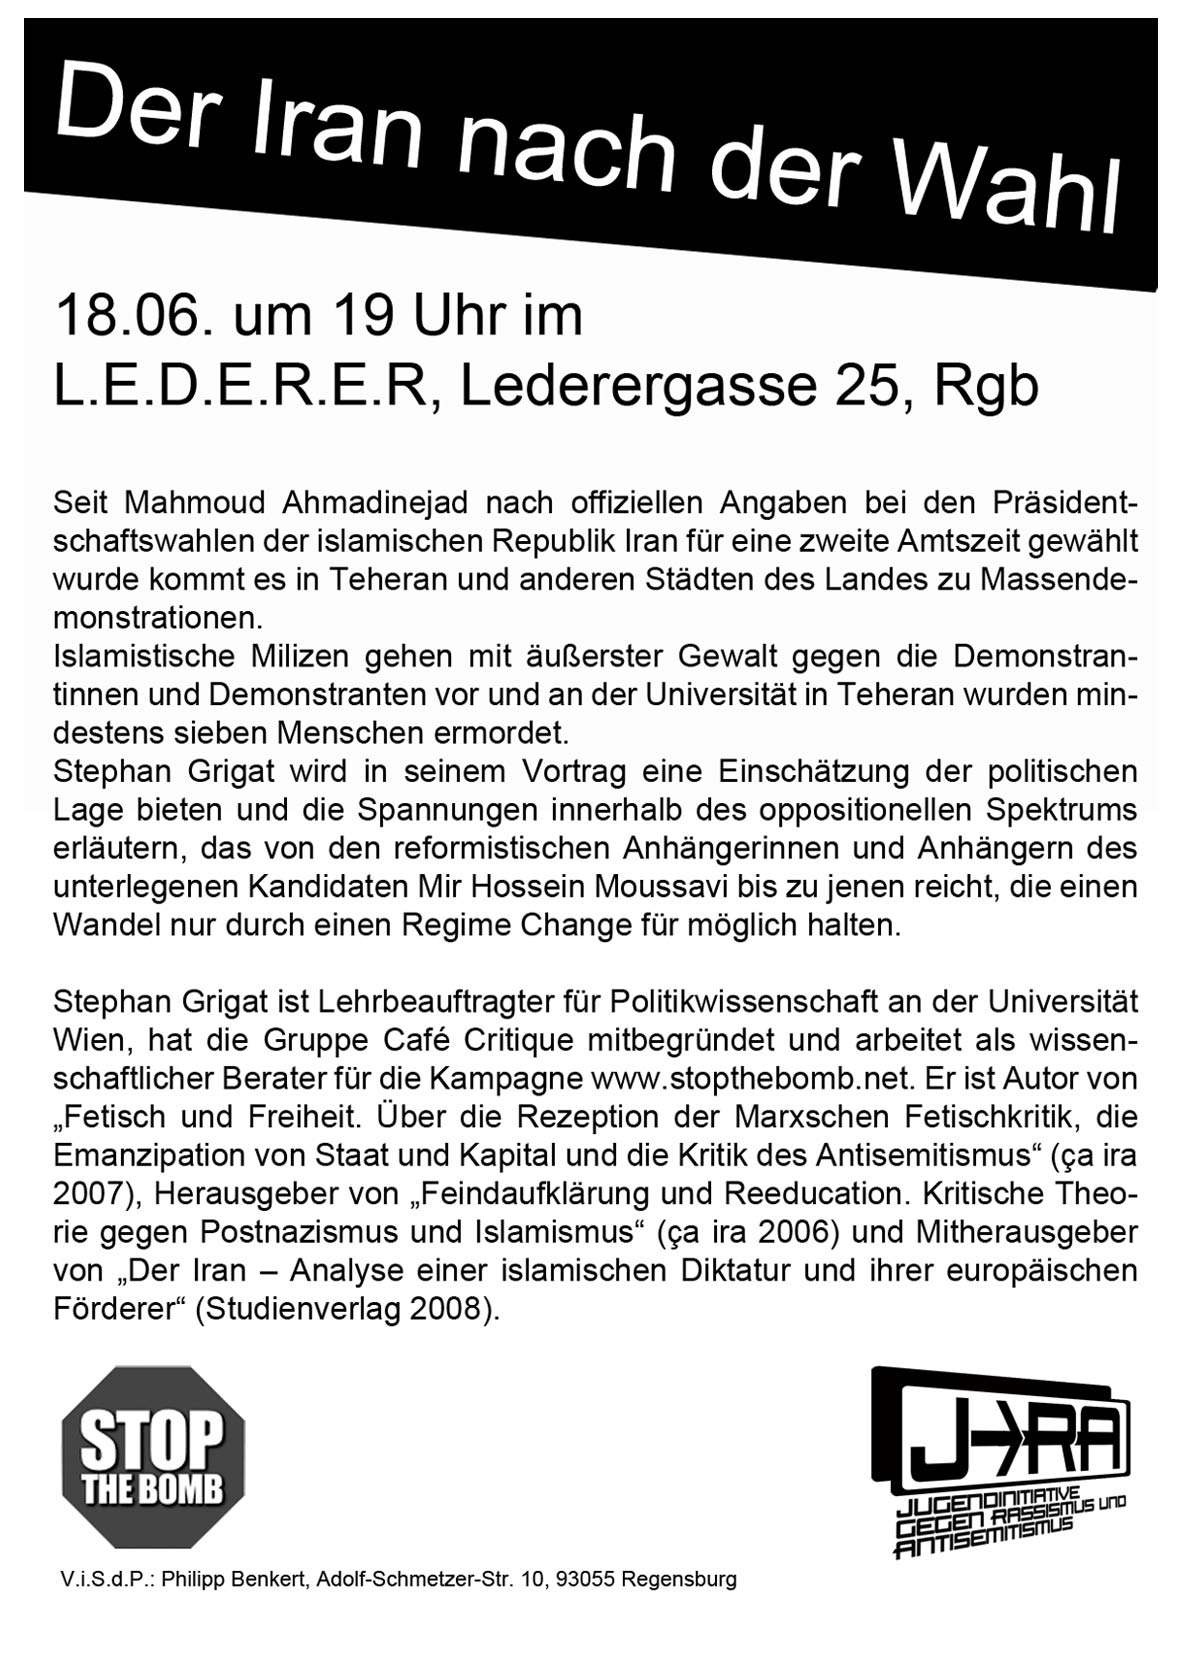 Der Iran nach der Wahl 2009. Flyer zum Vortrag von Stephan Grigat